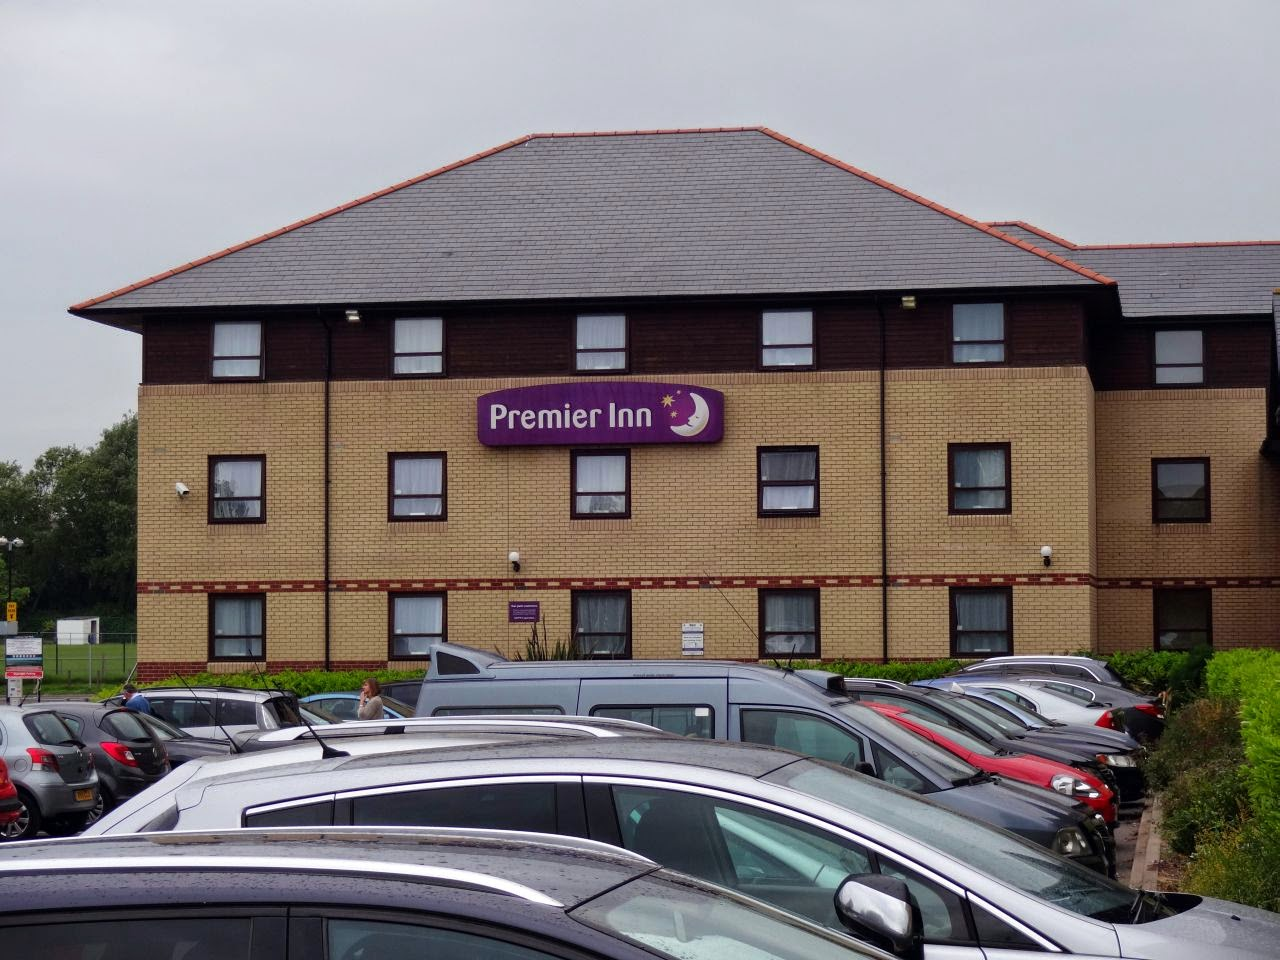 The Premier Inn, Weymouth